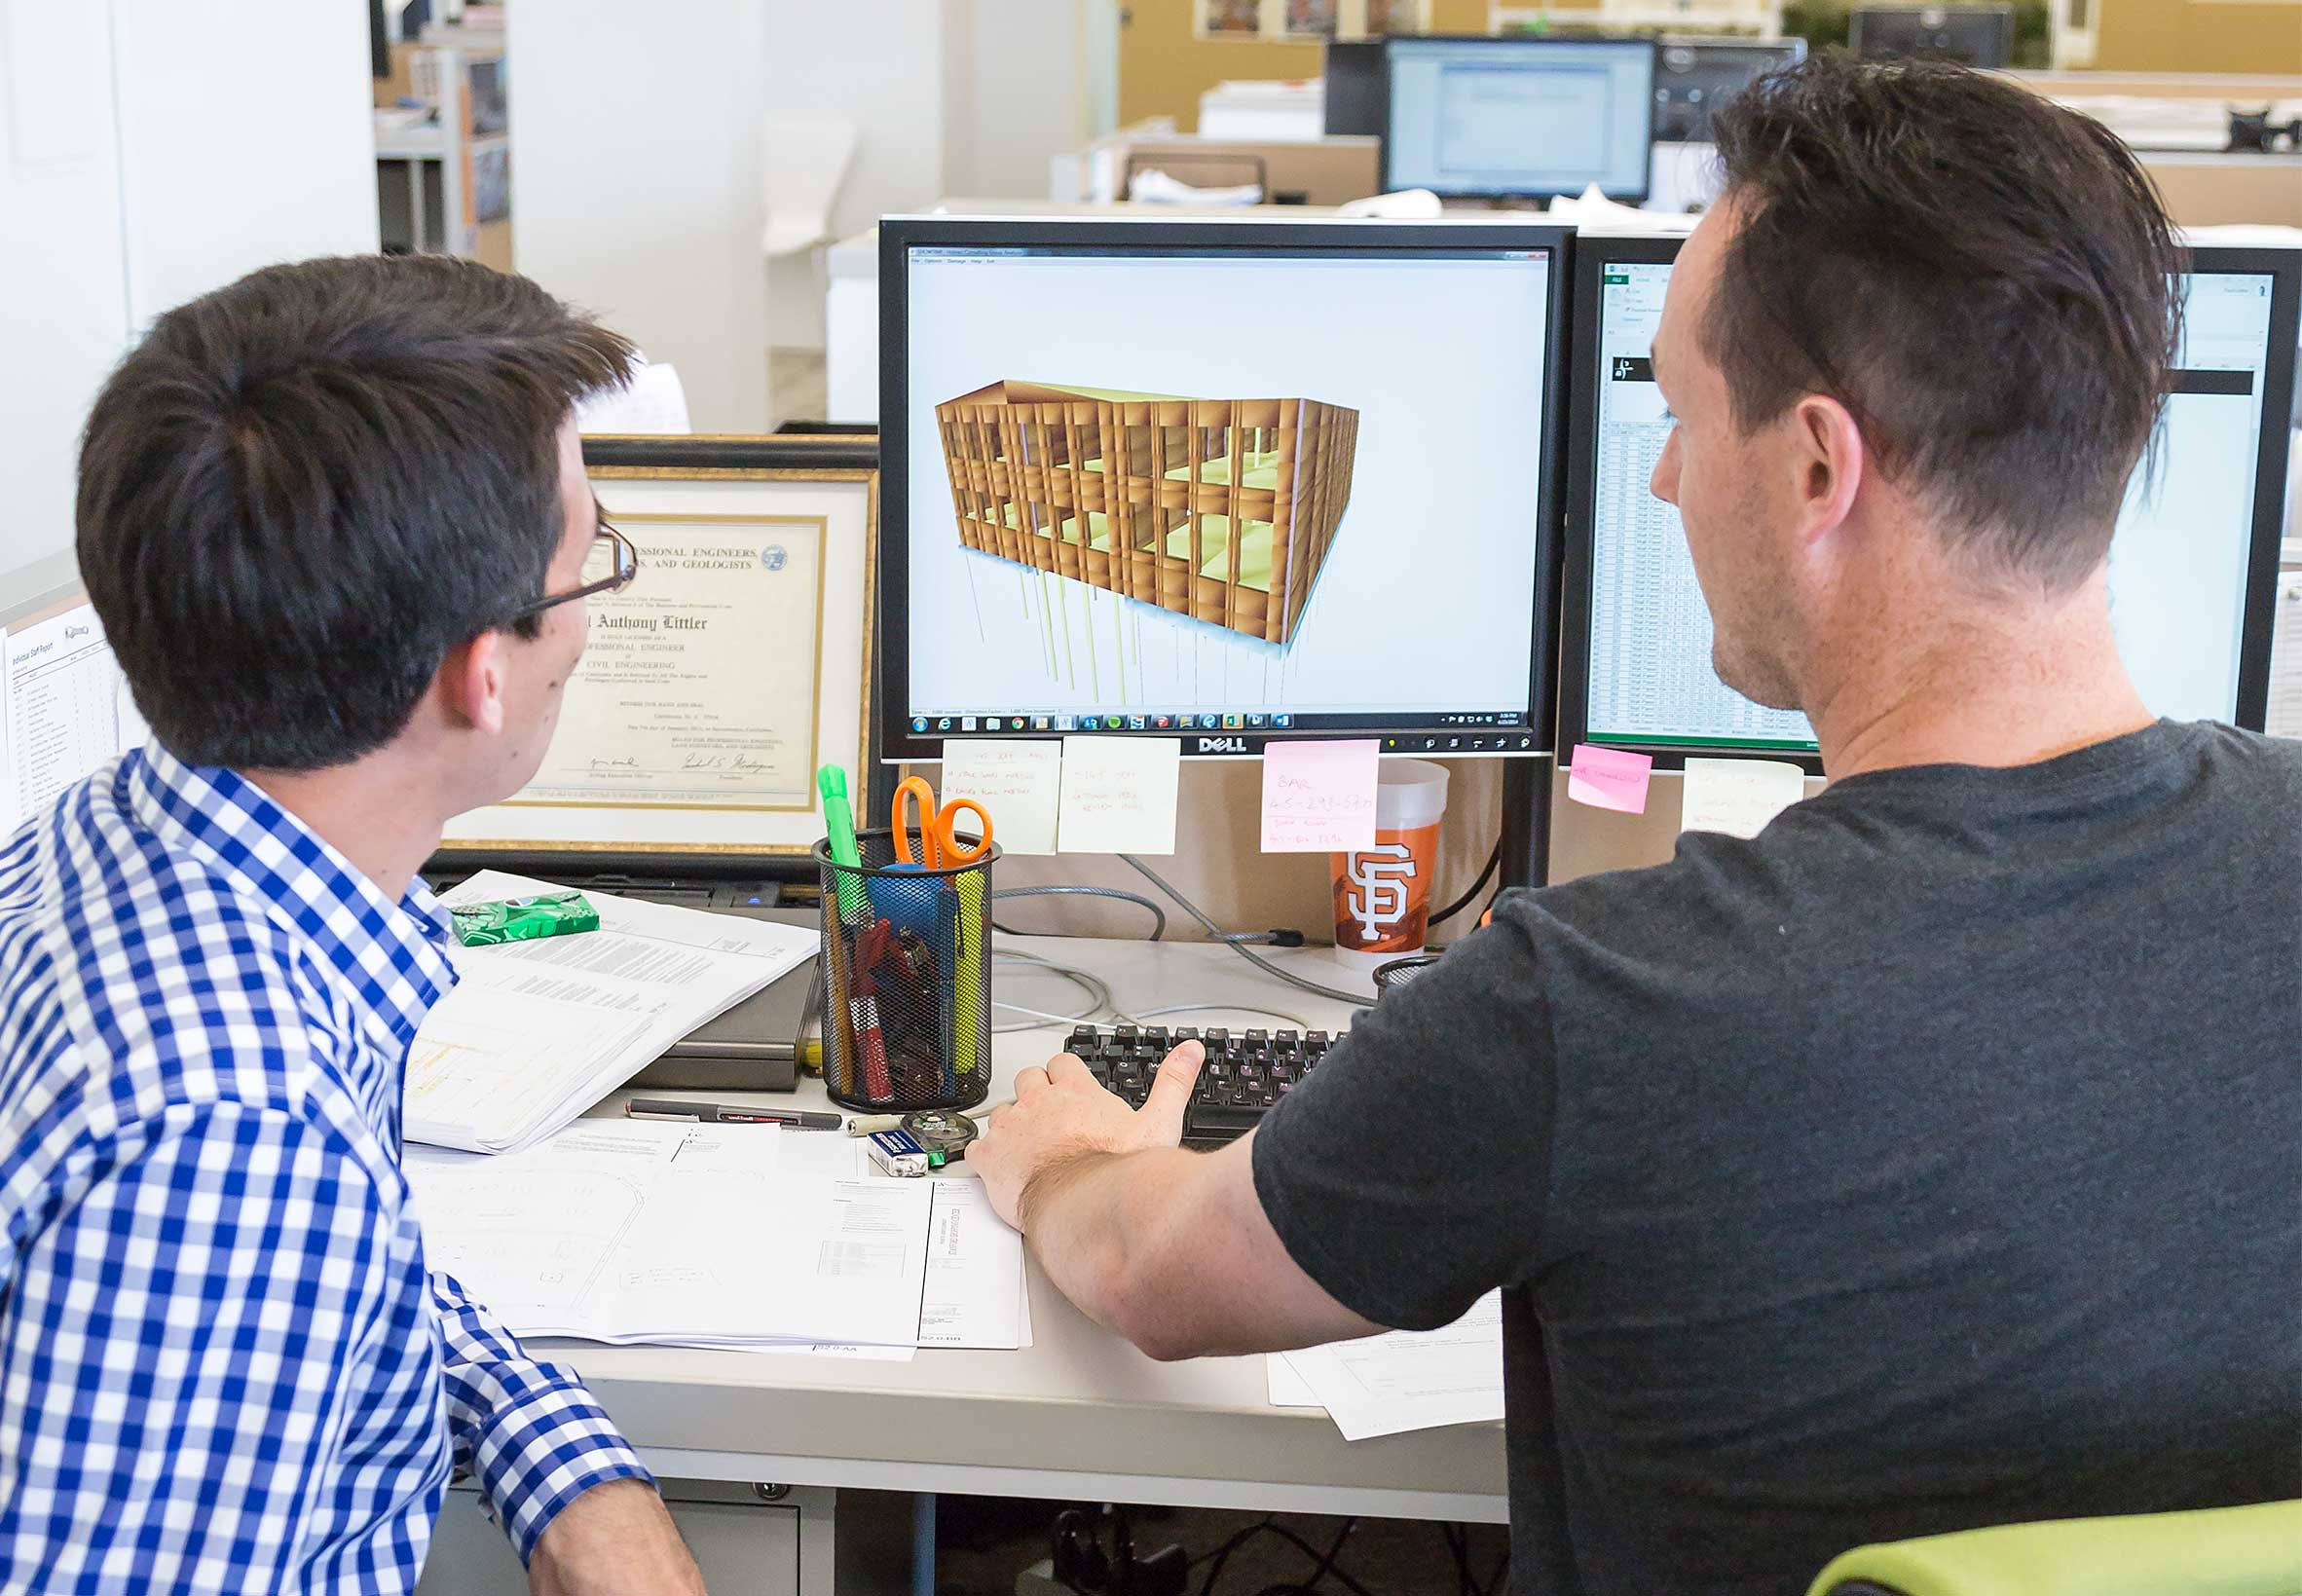 Engineers Review a 3D Building Model on Computer at Desk